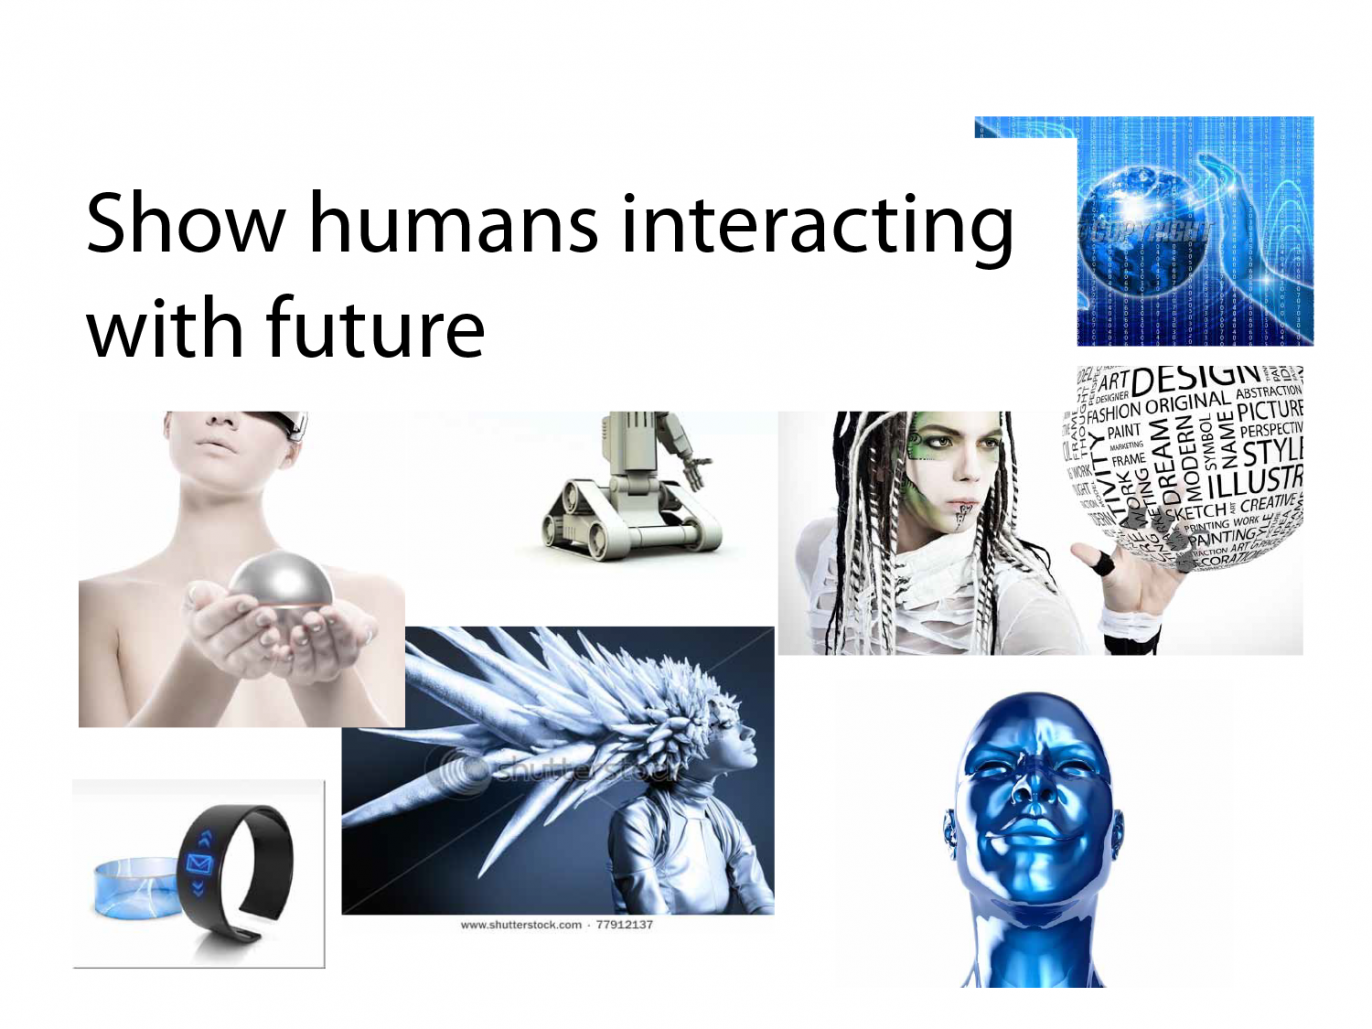 image showing humans interactign with futuristic interfaces